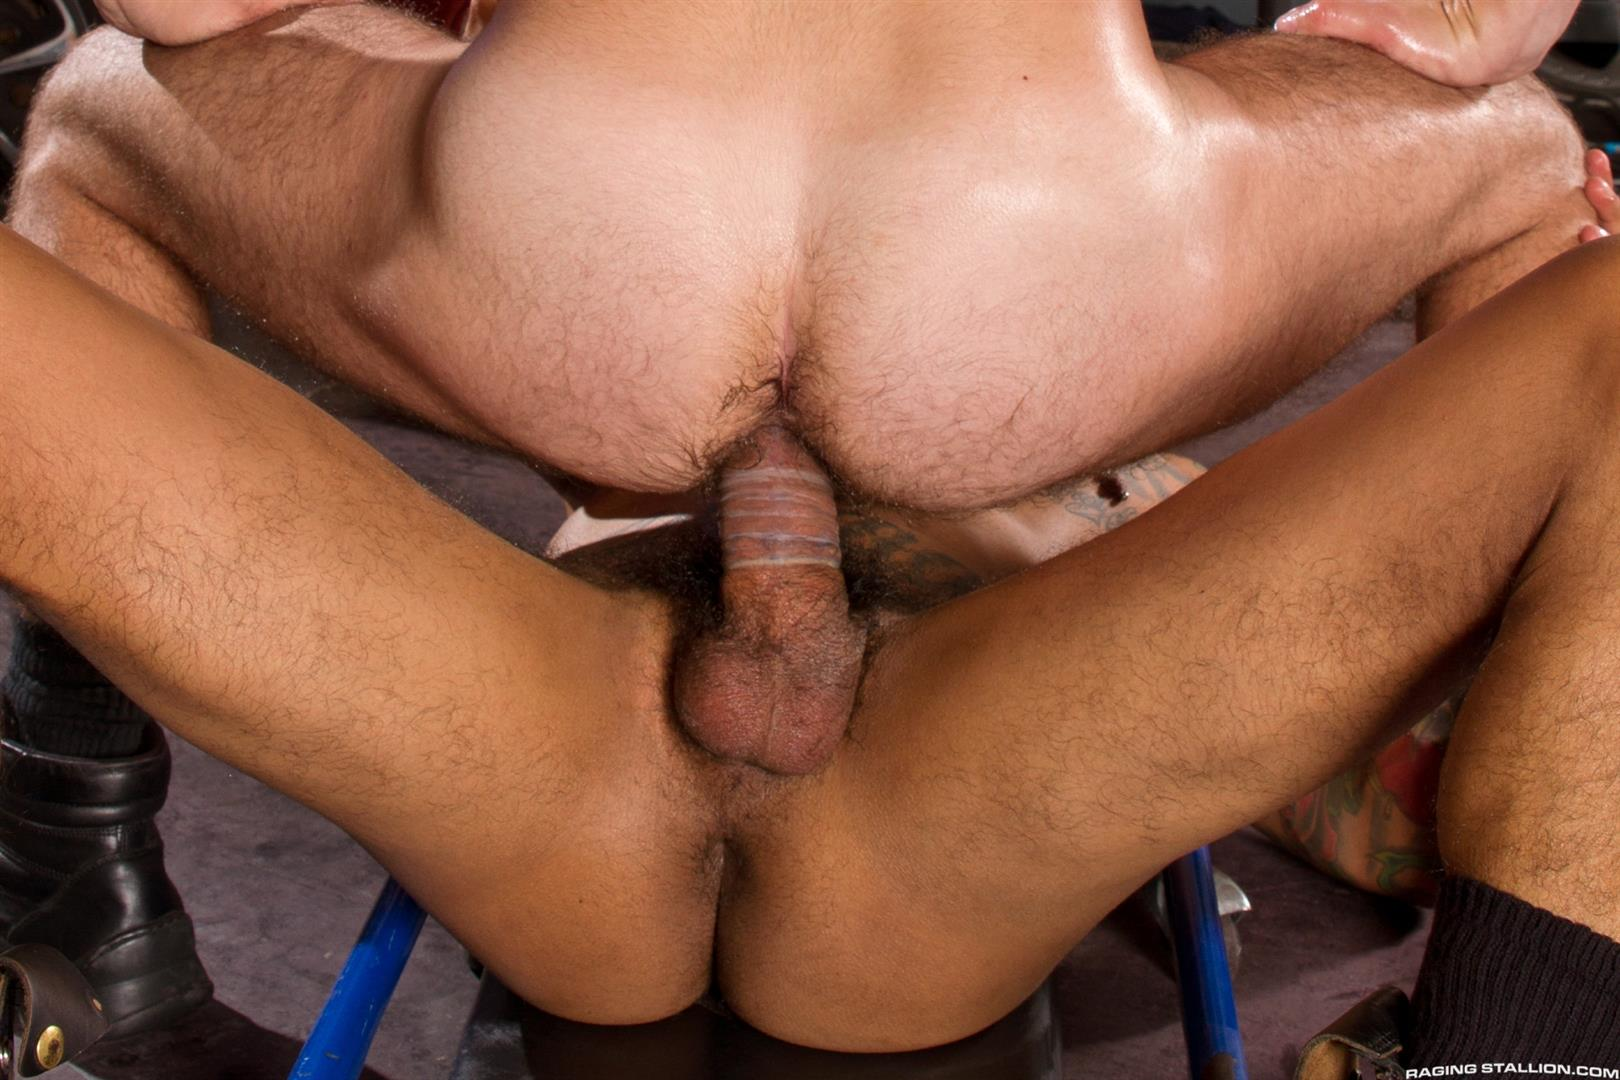 Raging Stallion Boomer Banks and Aaron Steel Big Uncut Cocks Fucking Amateur Gay Porn 11 Boomer Banks Fucking Aaron Steel With His Huge Uncut Cock